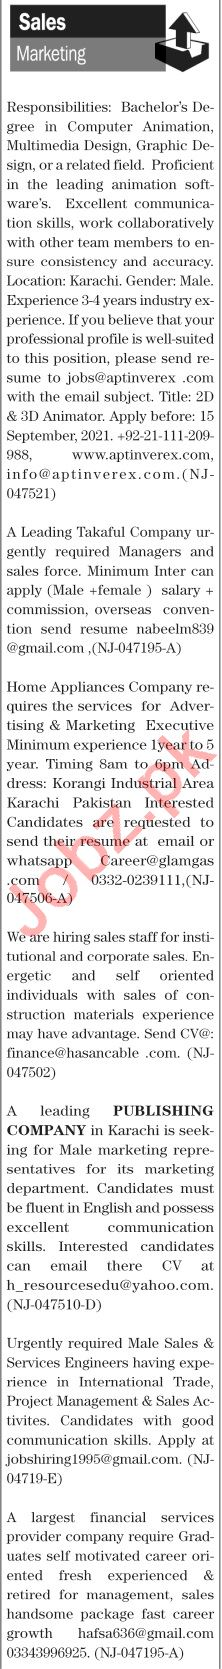 The News Sunday Classified Ads 12 Sep 2021 for Sales Staff